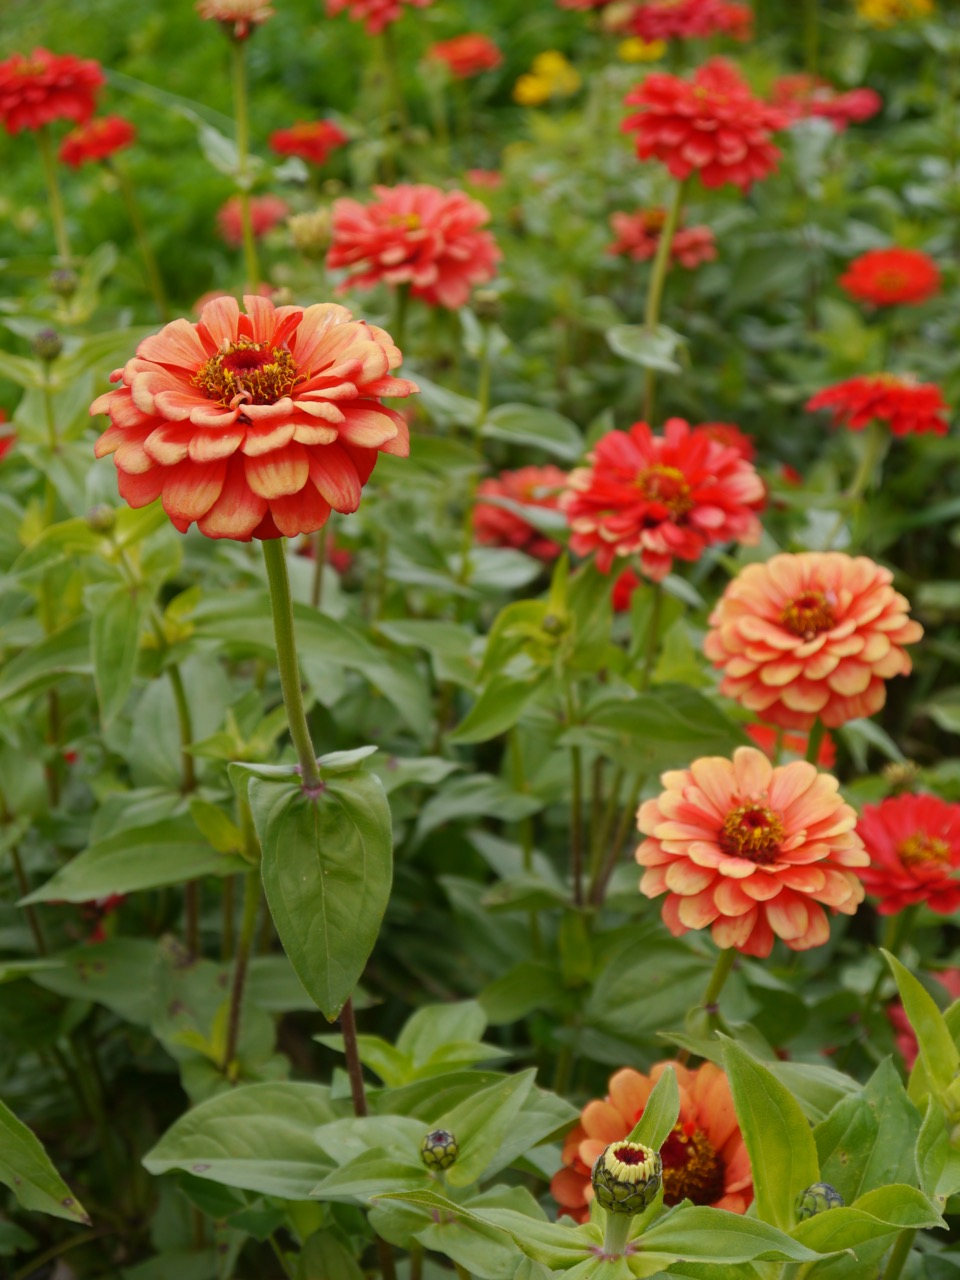 Organic Coral Zinnias Growing In The Cut Flower Garden